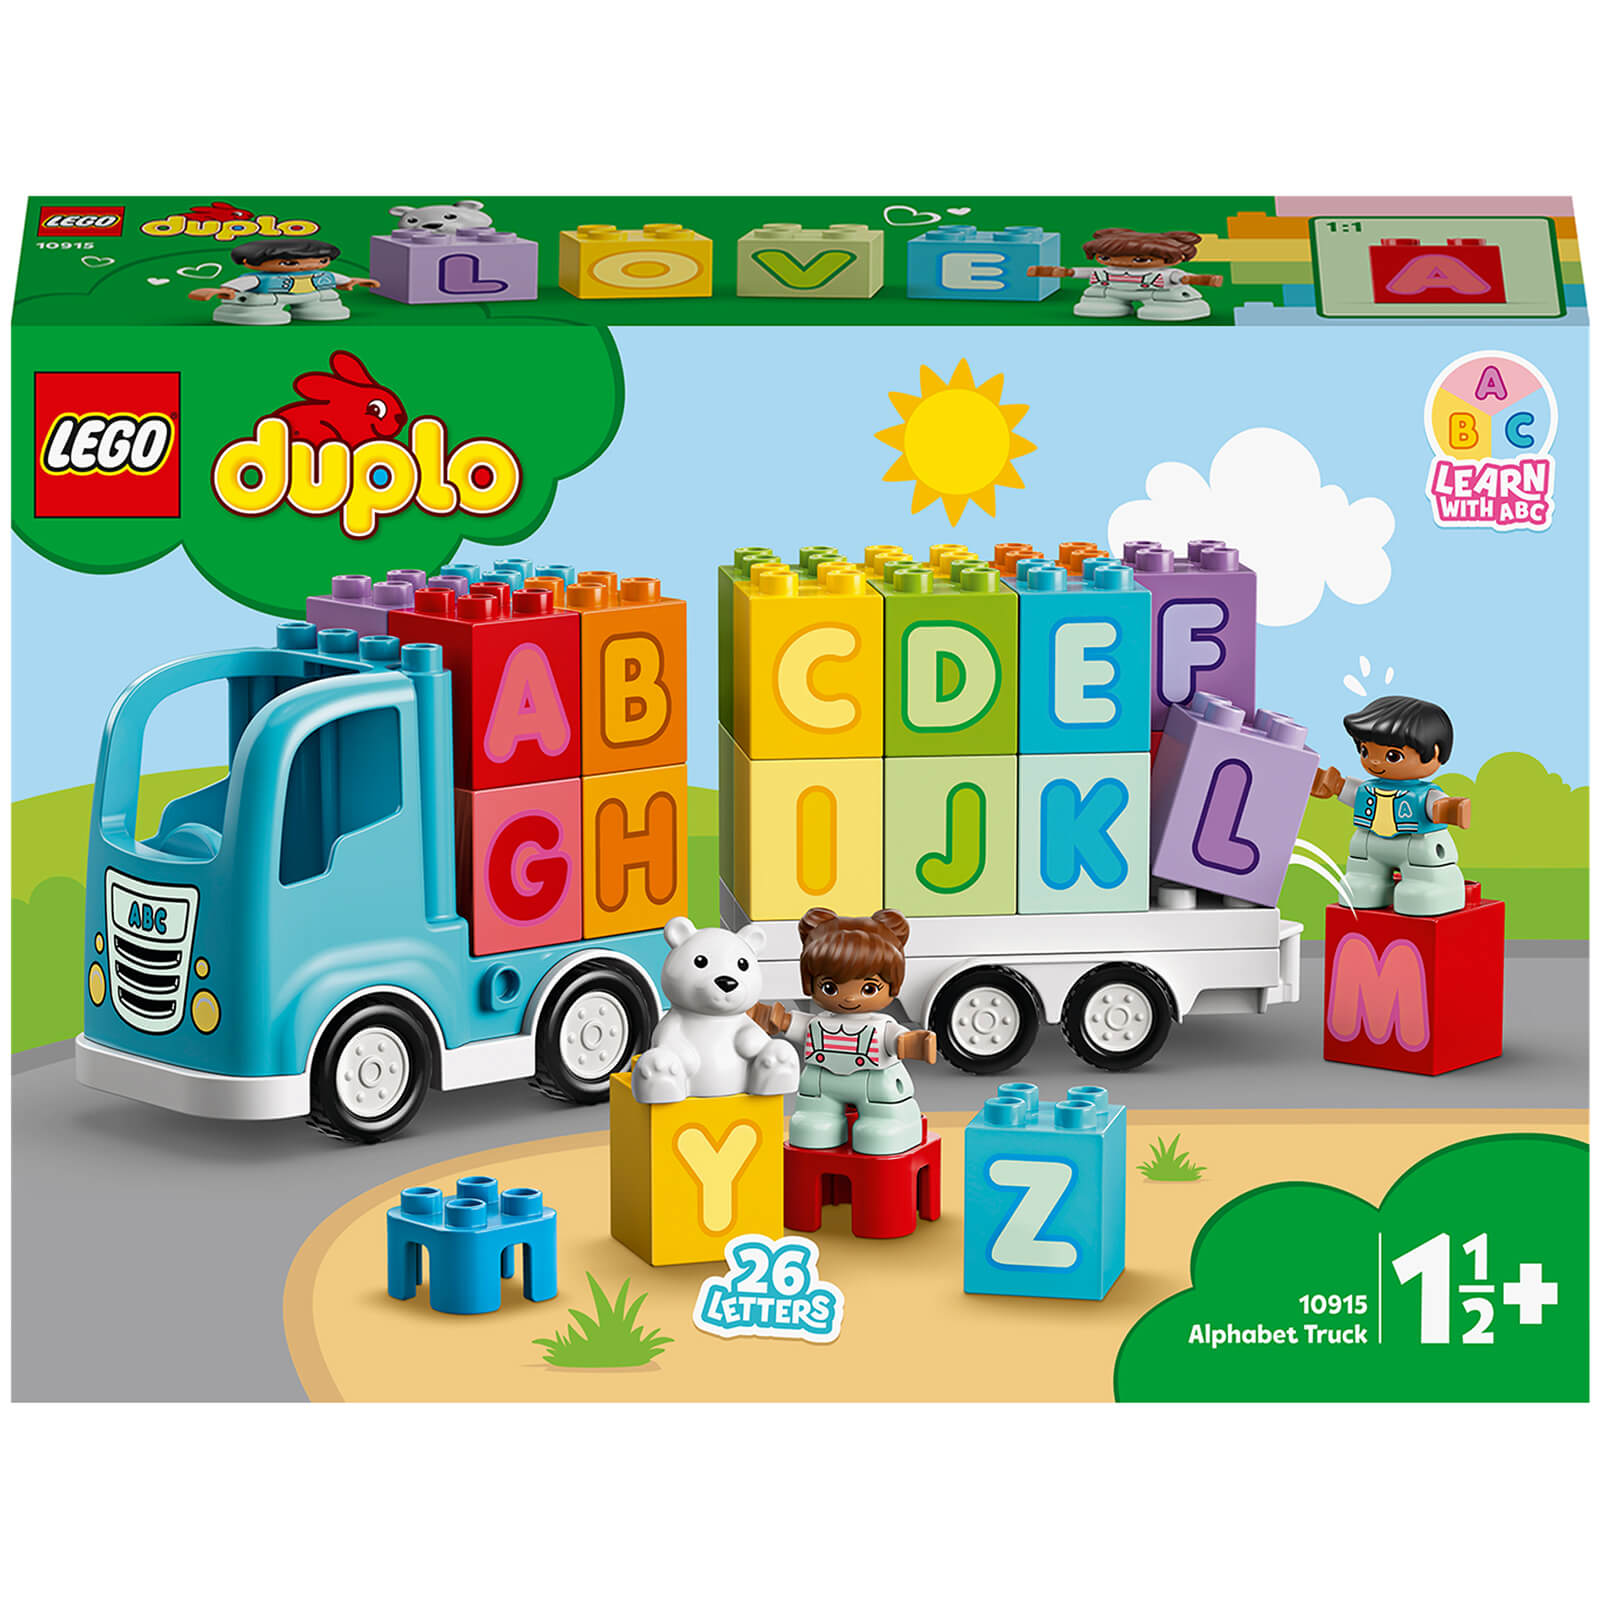 Image of 10915 LEGO® DUPLO® My first ABC truck